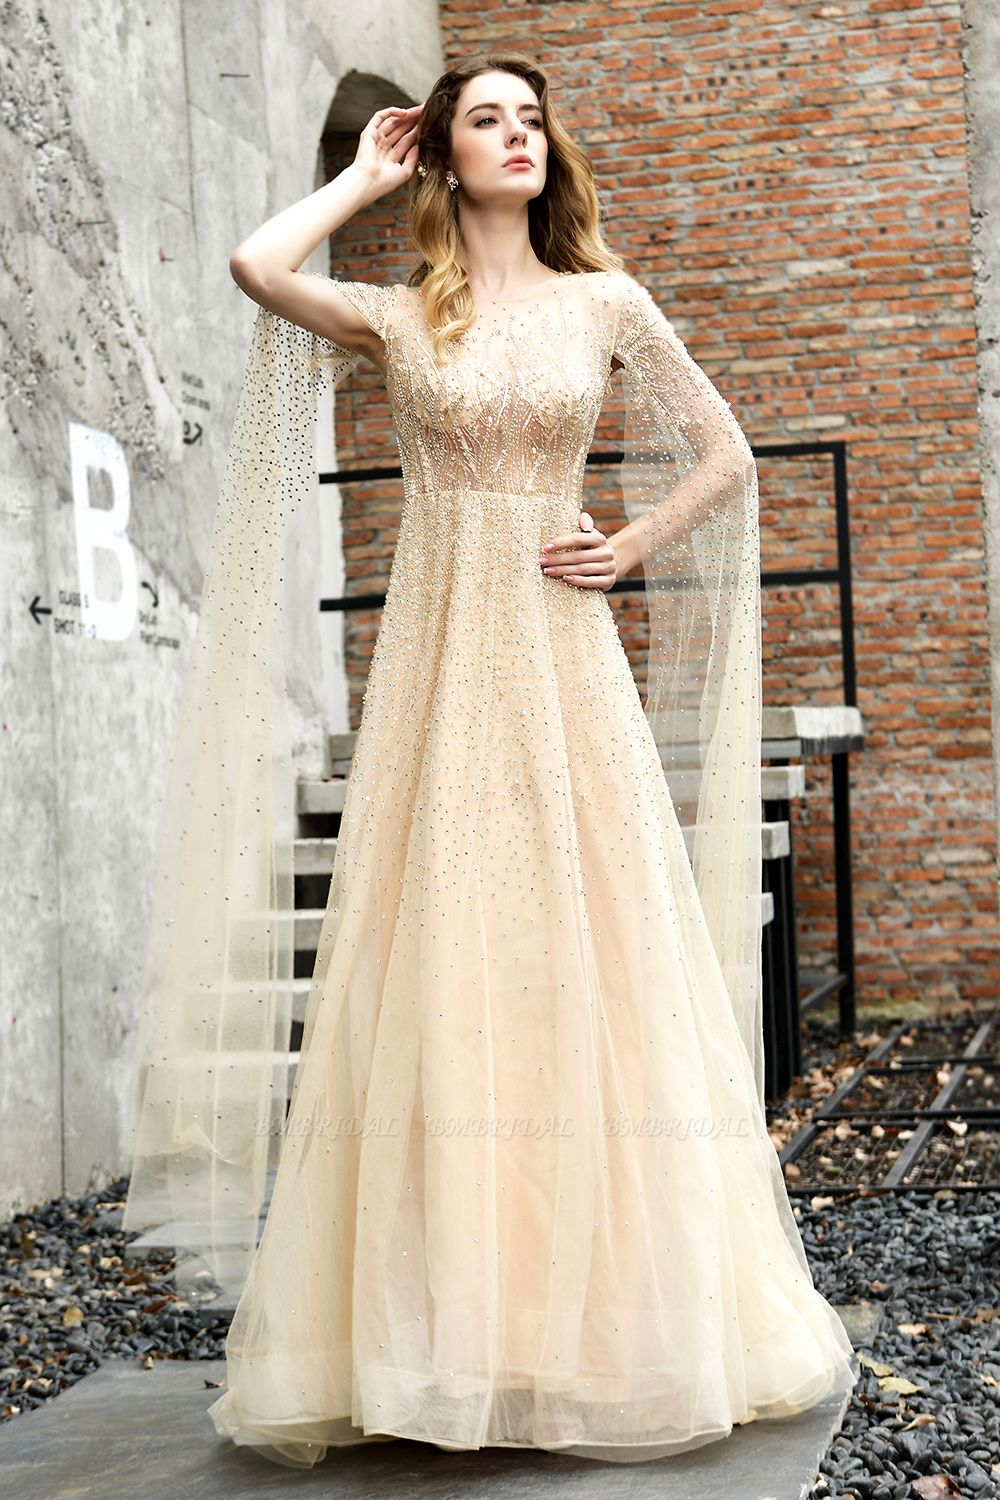 Luxurious Tulle Crystals Long Prom Dress Online With Ruffle Sleeves